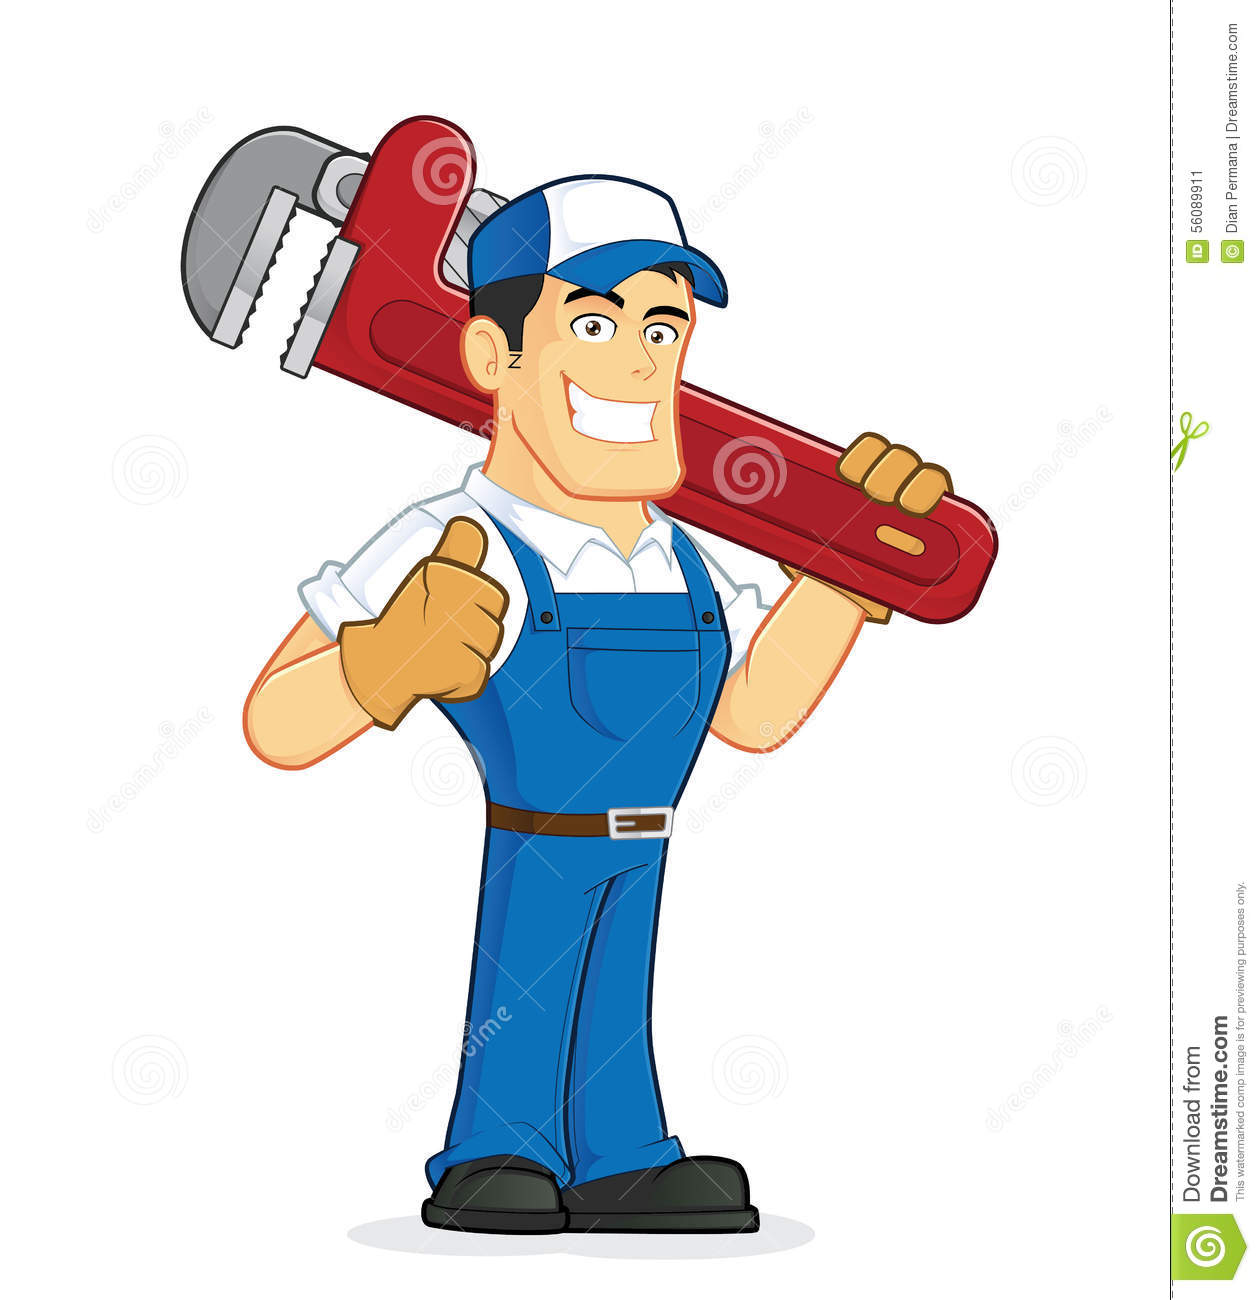 plumber-holding-huge-pipe-wrench-clipart-picture-cartoon-character-56089911.jpg